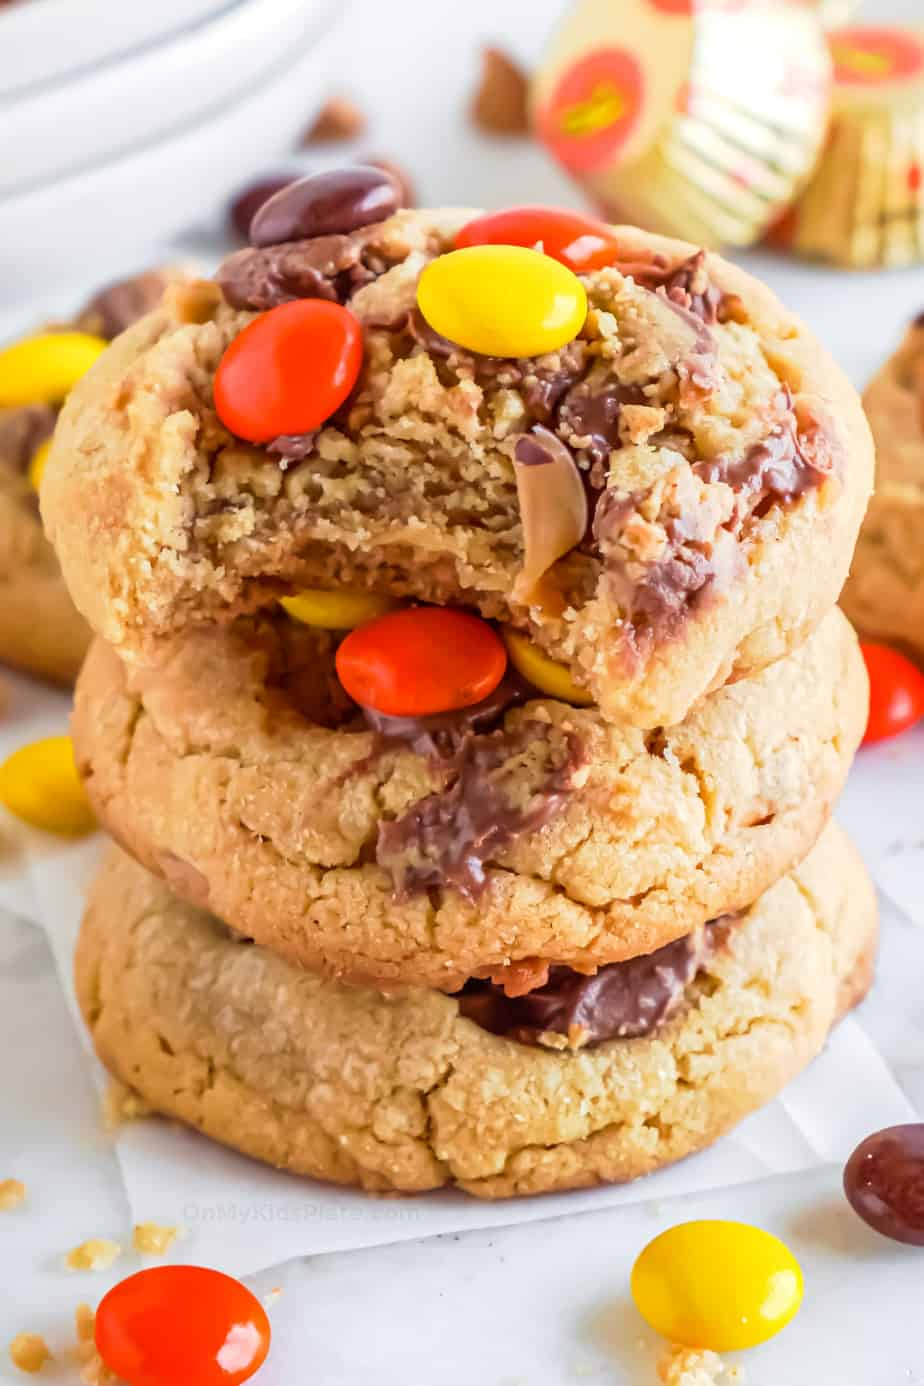 Stack of cookies topped with Reese's pieces and peanut butter cup pieces. The top cookie has a bite missing